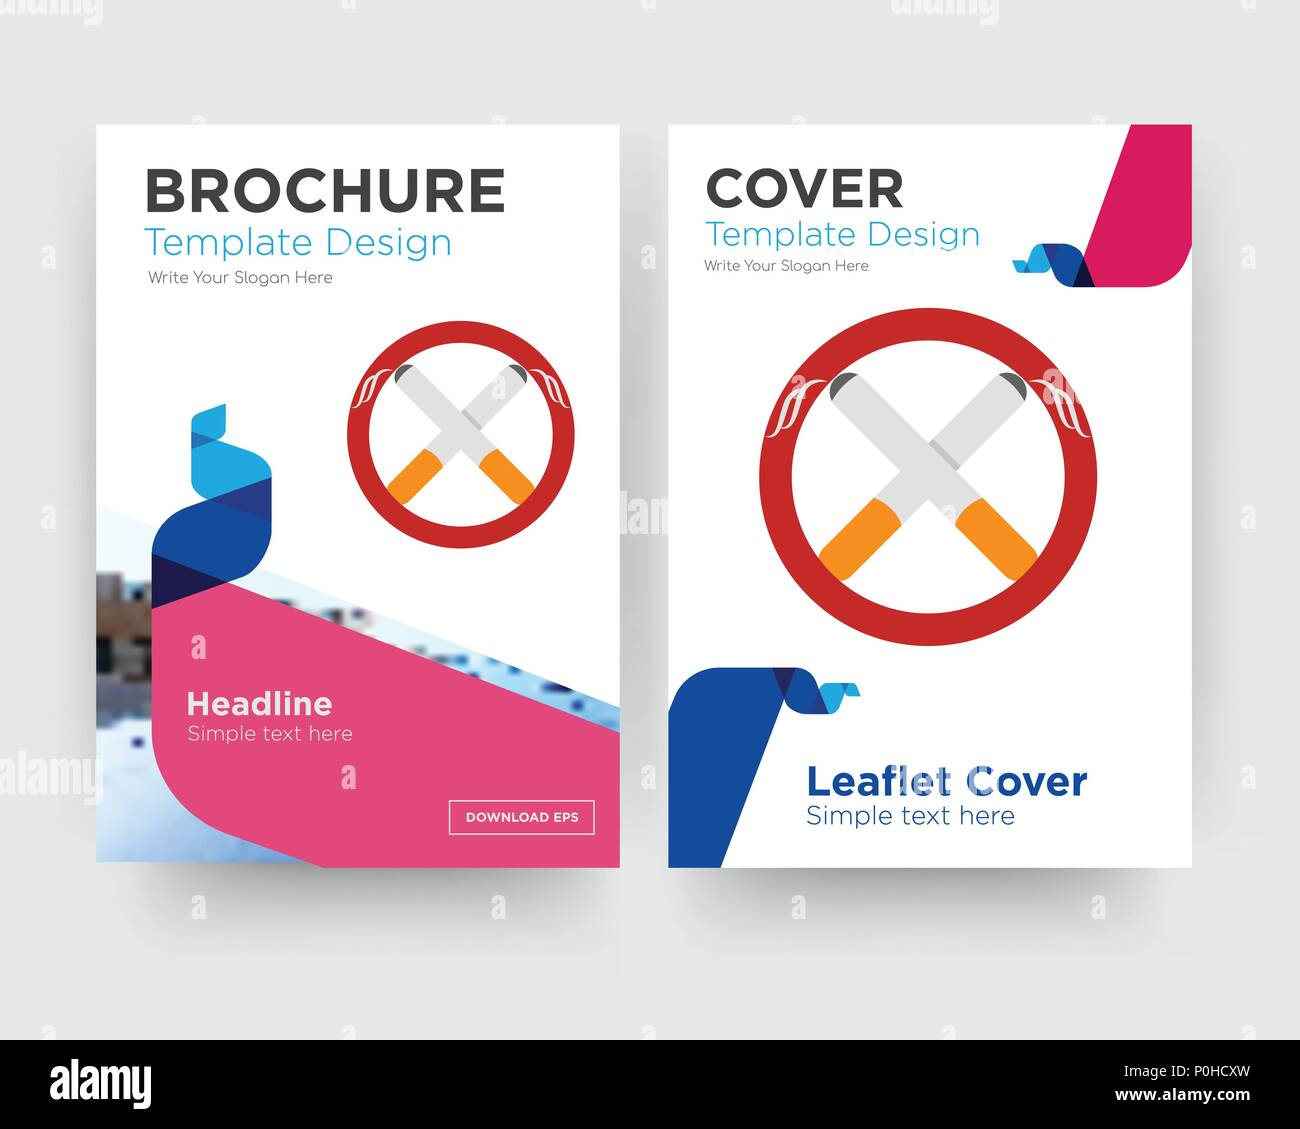 non smoking brochure flyer design template with abstract photo